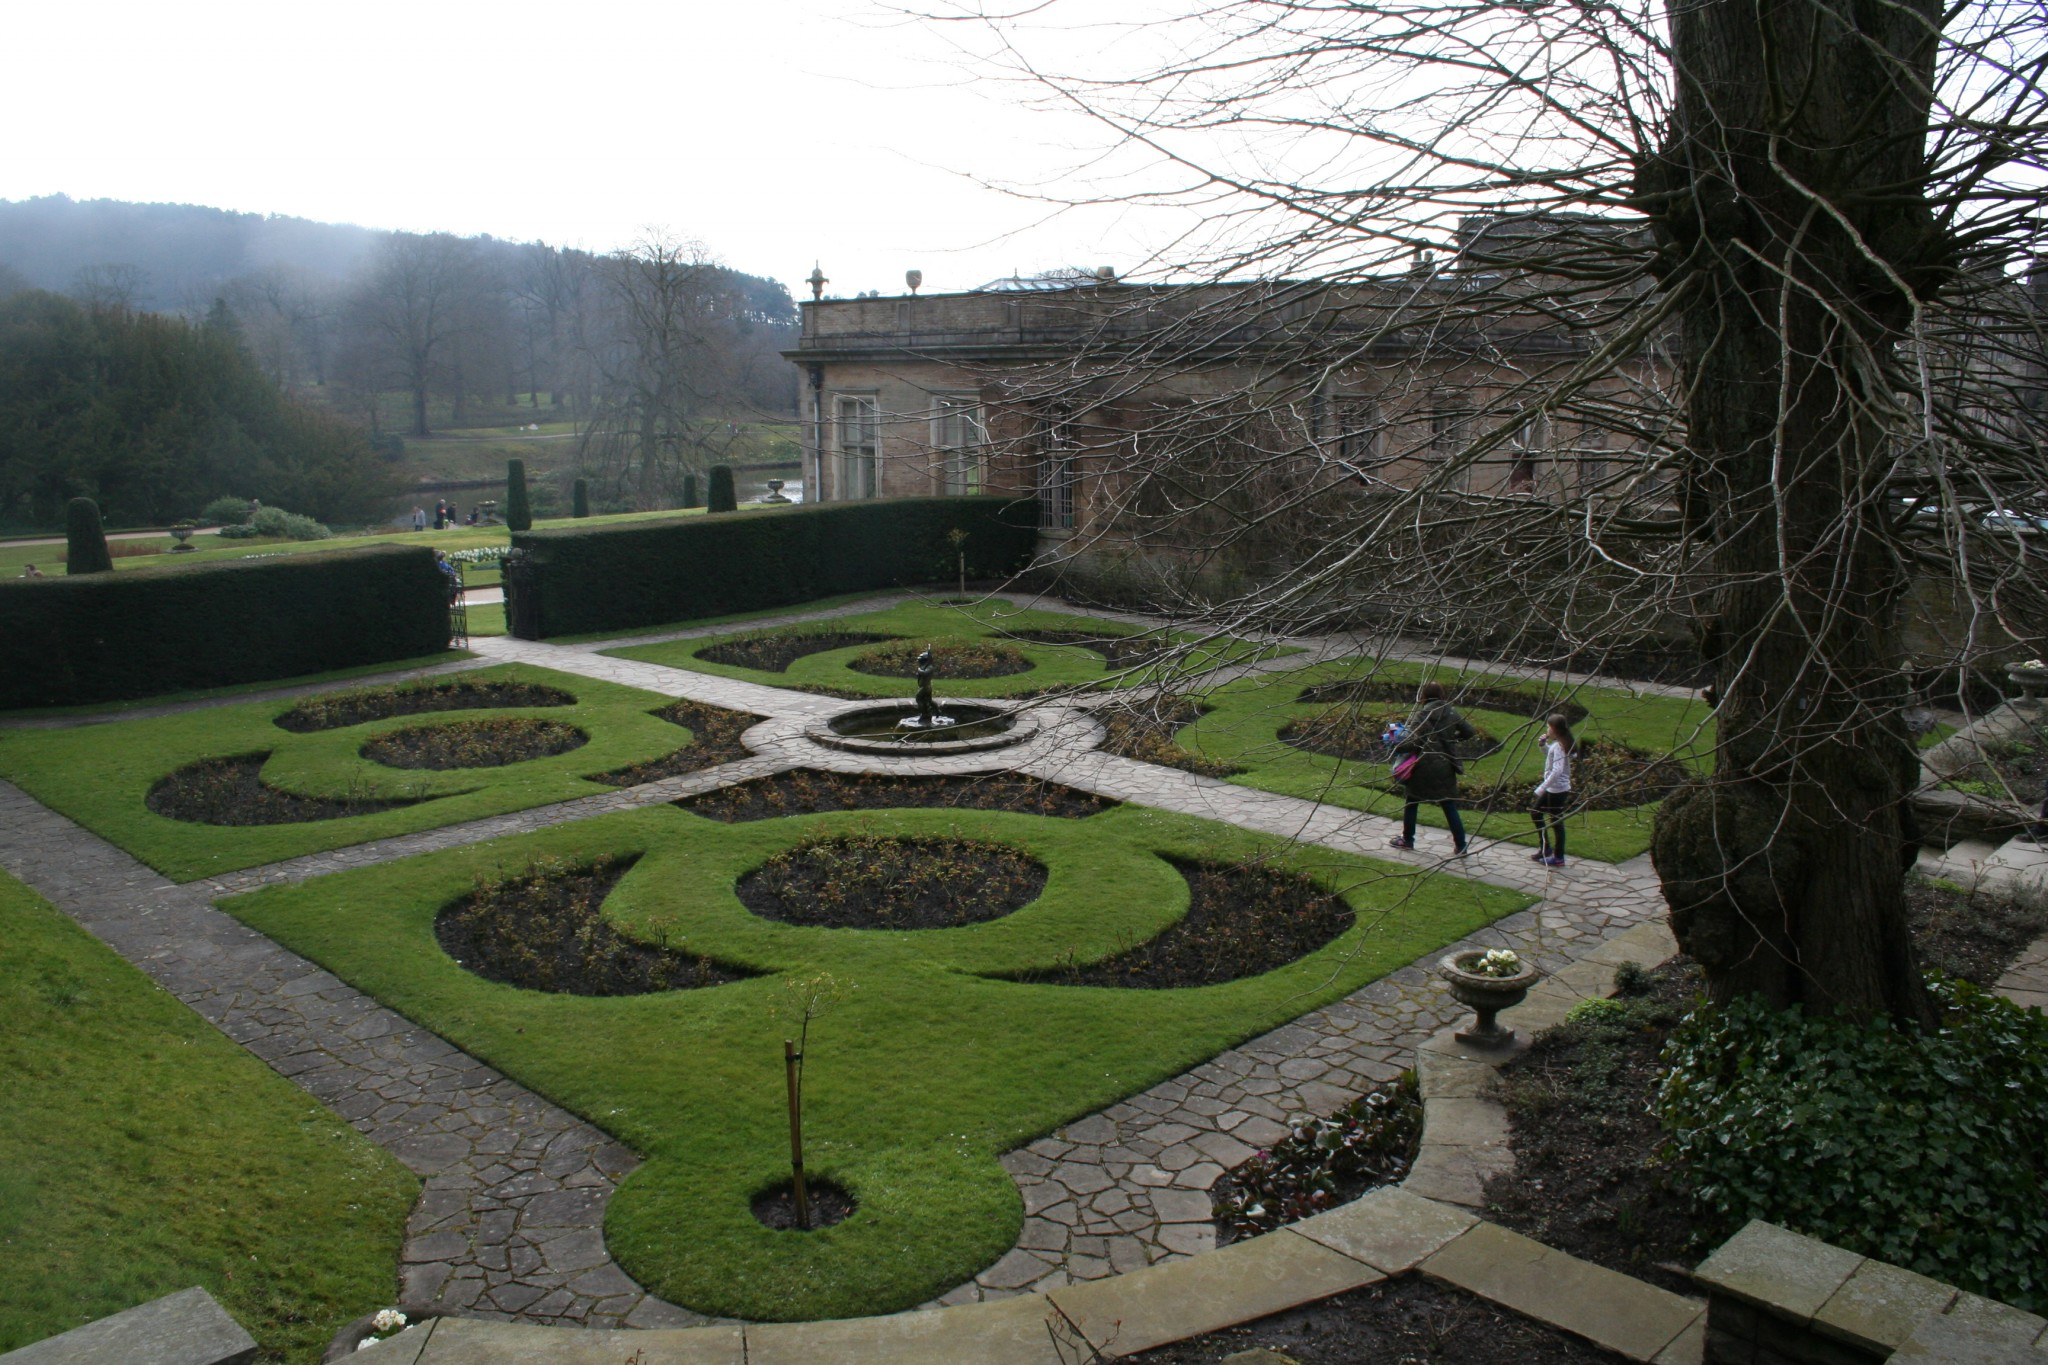 Italian Garden will be full of colour later in the season.